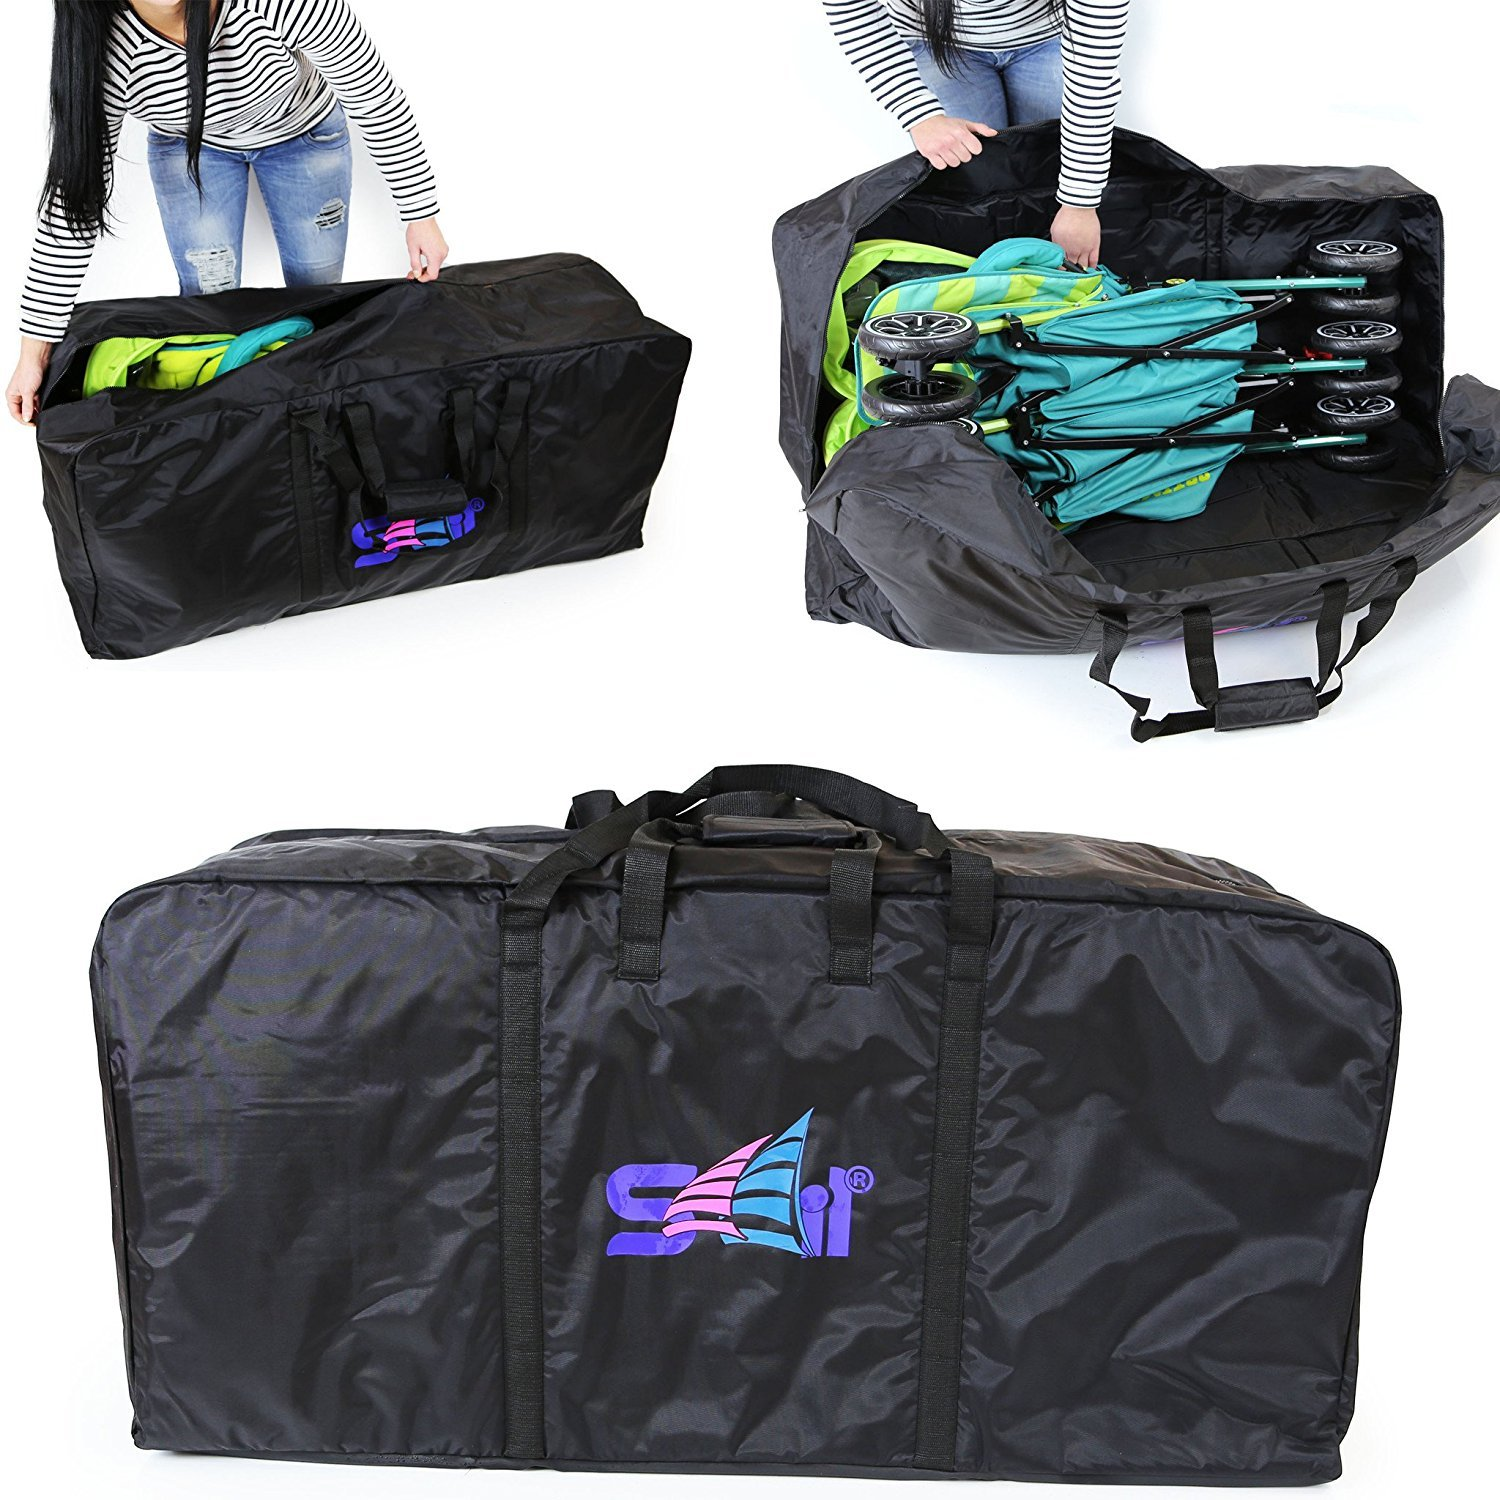 Twin Stroller Luggage Bag For Chicco Echo Double Buggy (Transport Bag) iSafe SailTravelBag